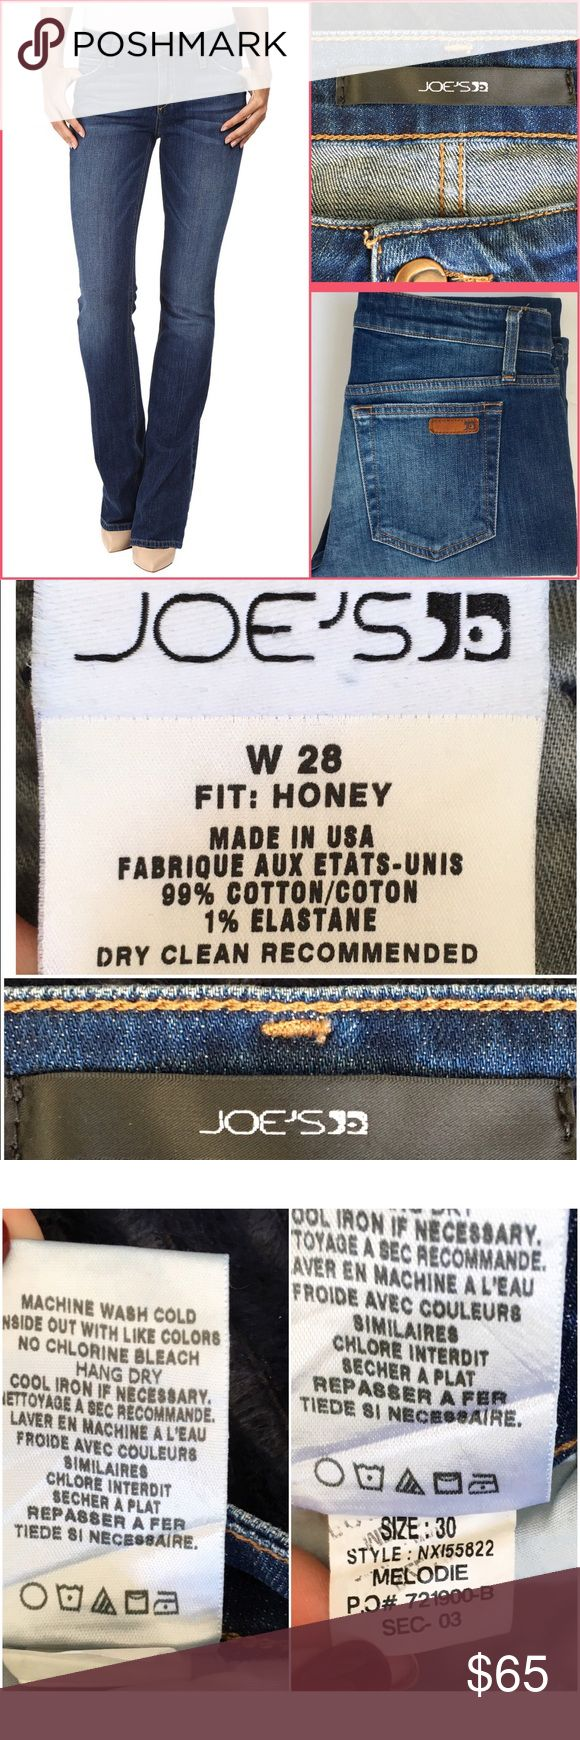 Joe's Jeans Honey Bootcut Flattering mid-rise jean fits skinny through hip and thigh then goes to bootcut. Five pocket style with leather embossed locker tag on back pocket. 99% cotton, 1% elastase. Awesome jeans in excellent condition! 101301655 Joe's Jeans Jeans Boot Cut